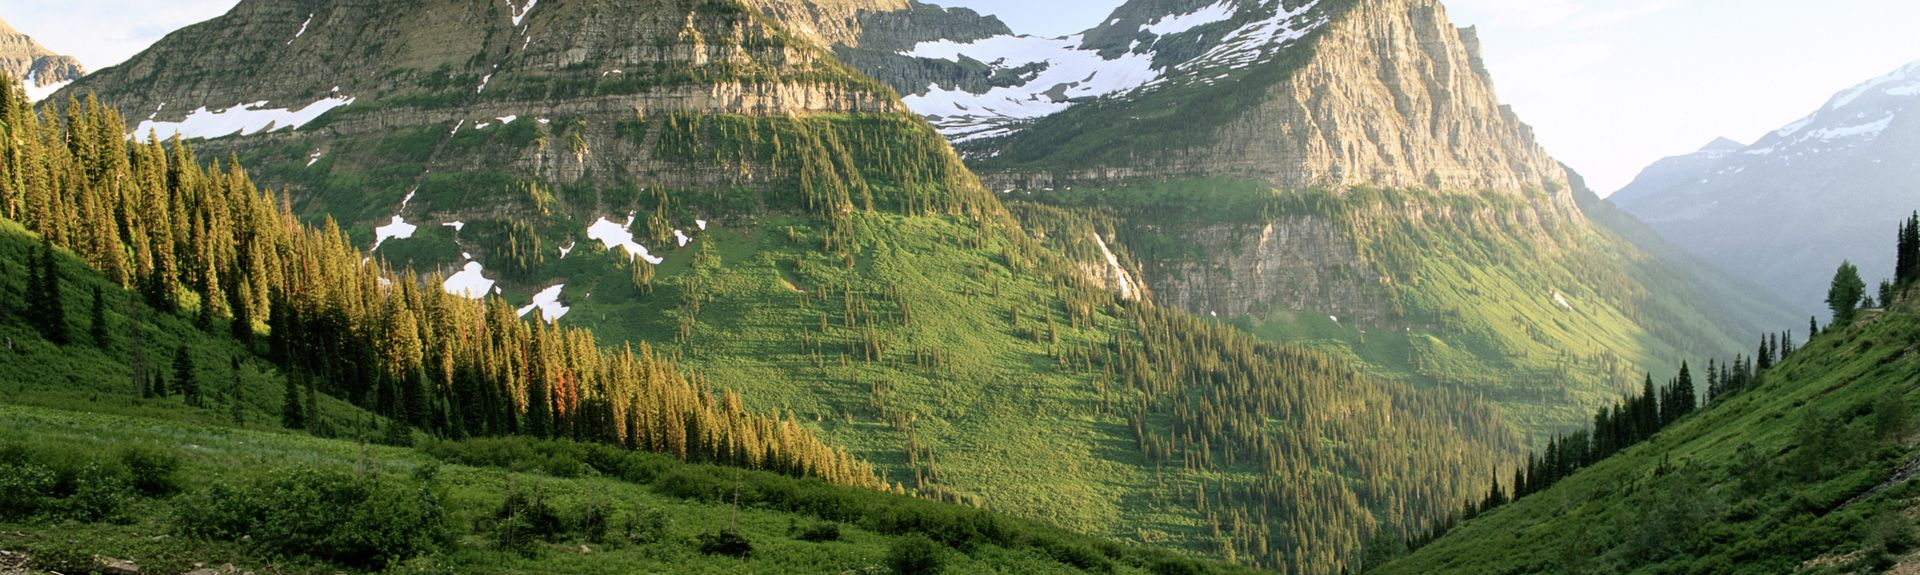 West Glacier, Montana, United States of America